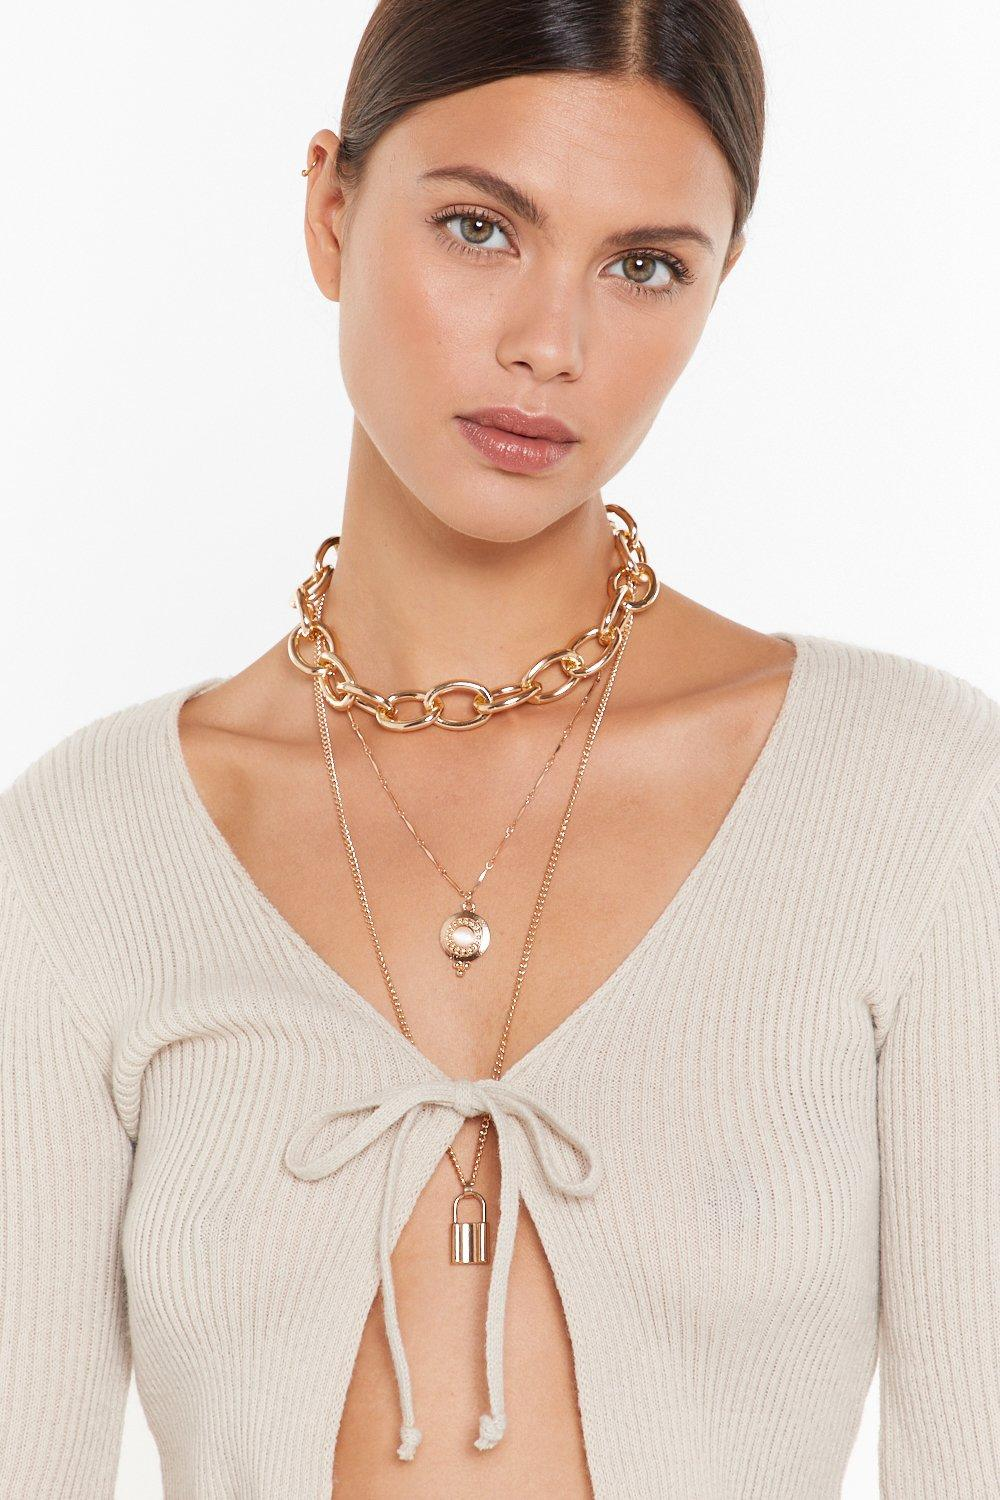 Image of Our Heart's On Lock Pendant Layered Necklace